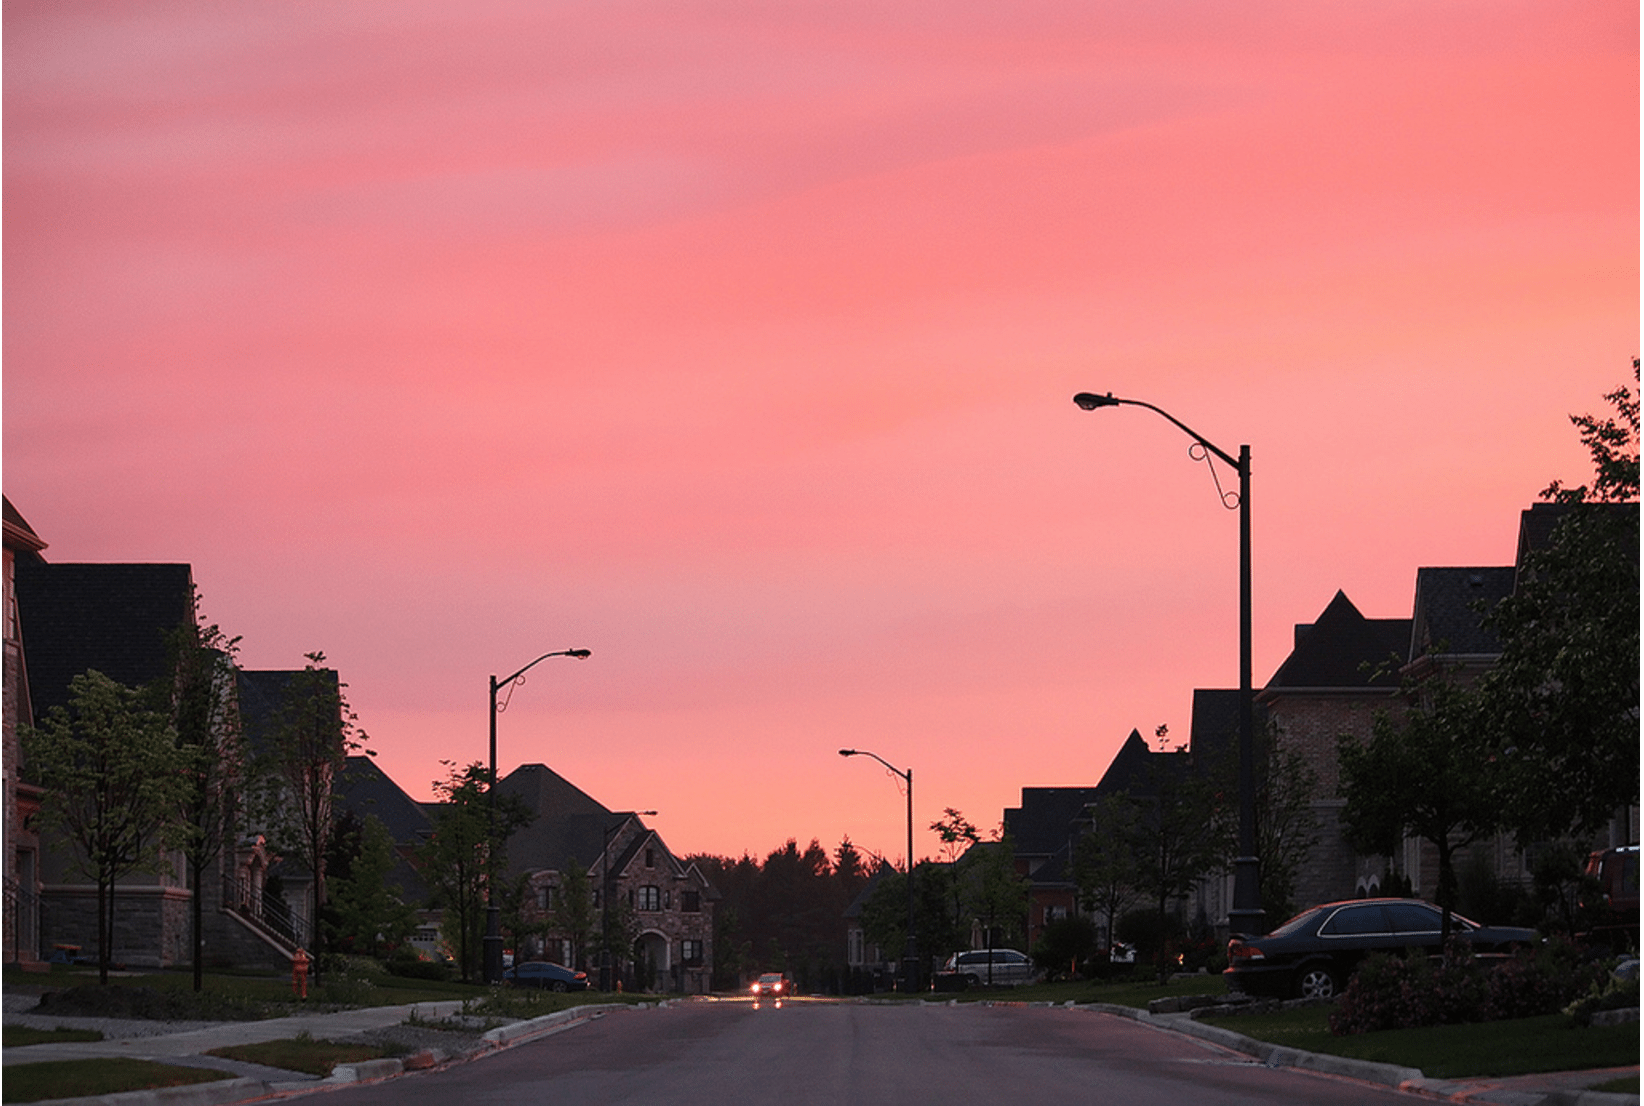 Although the suburbs have space for large houses and parks, they often aren't walkable neighbourhoods. Photo by MrDanMofo . in the Torontoist Flickr Pool.